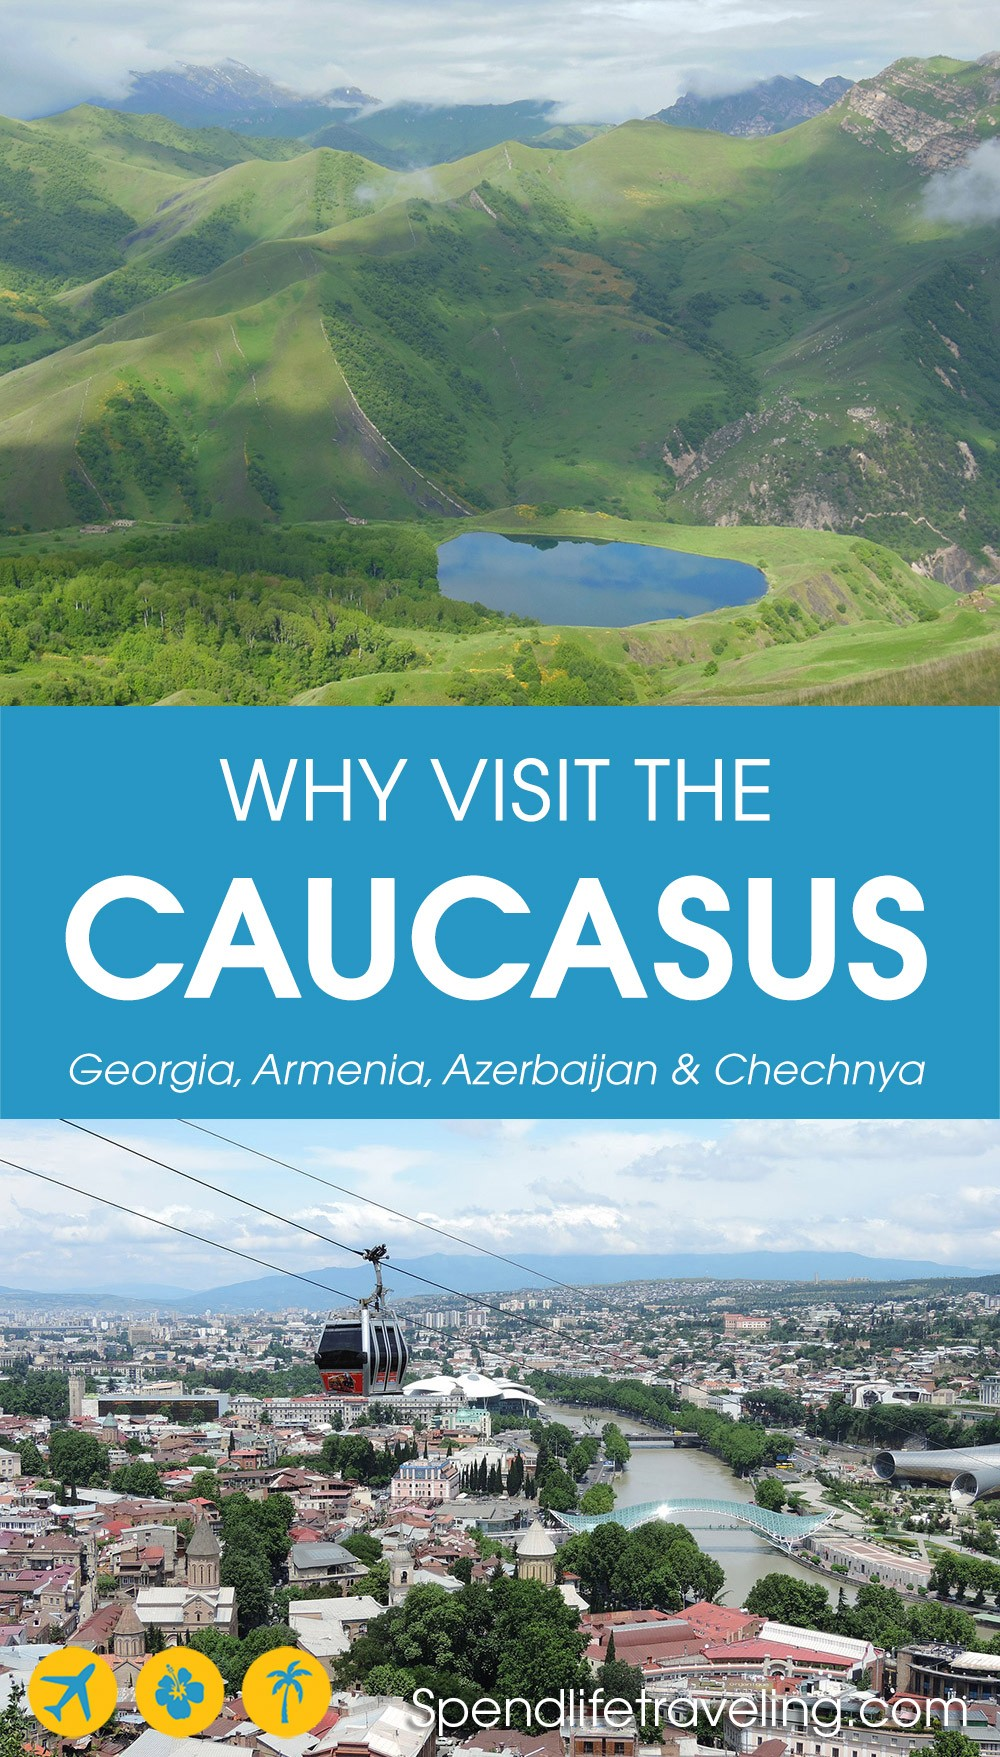 Where to go in the #Caucasus region. #Georgia #Armenia #Azerbaijan #Chechnya